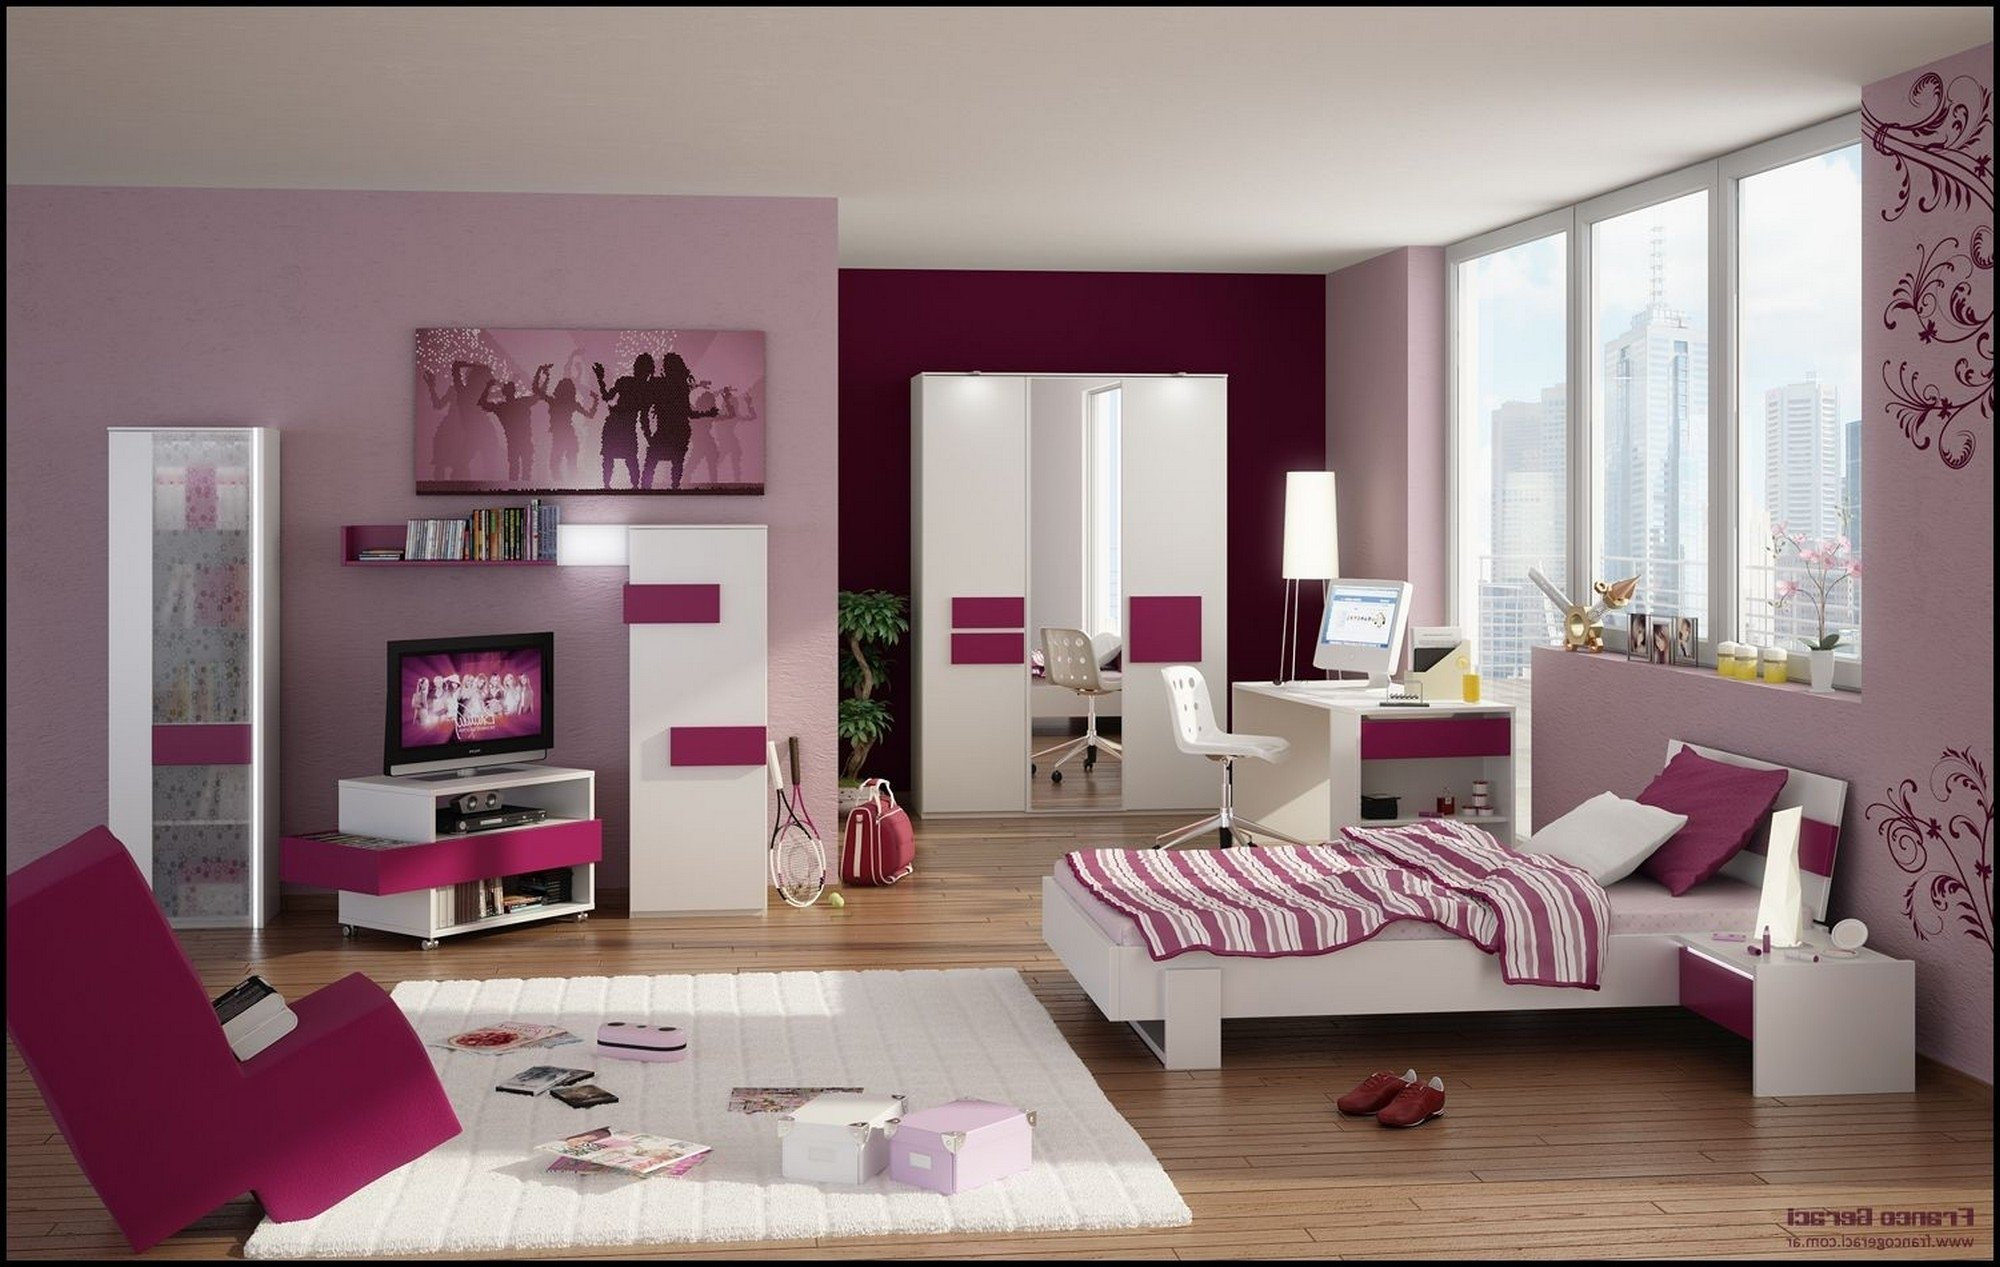 10 Fabulous Bedroom Ideas For Young Adults bedroom decorating ideas for young adults new bedroom ideas adults 2021